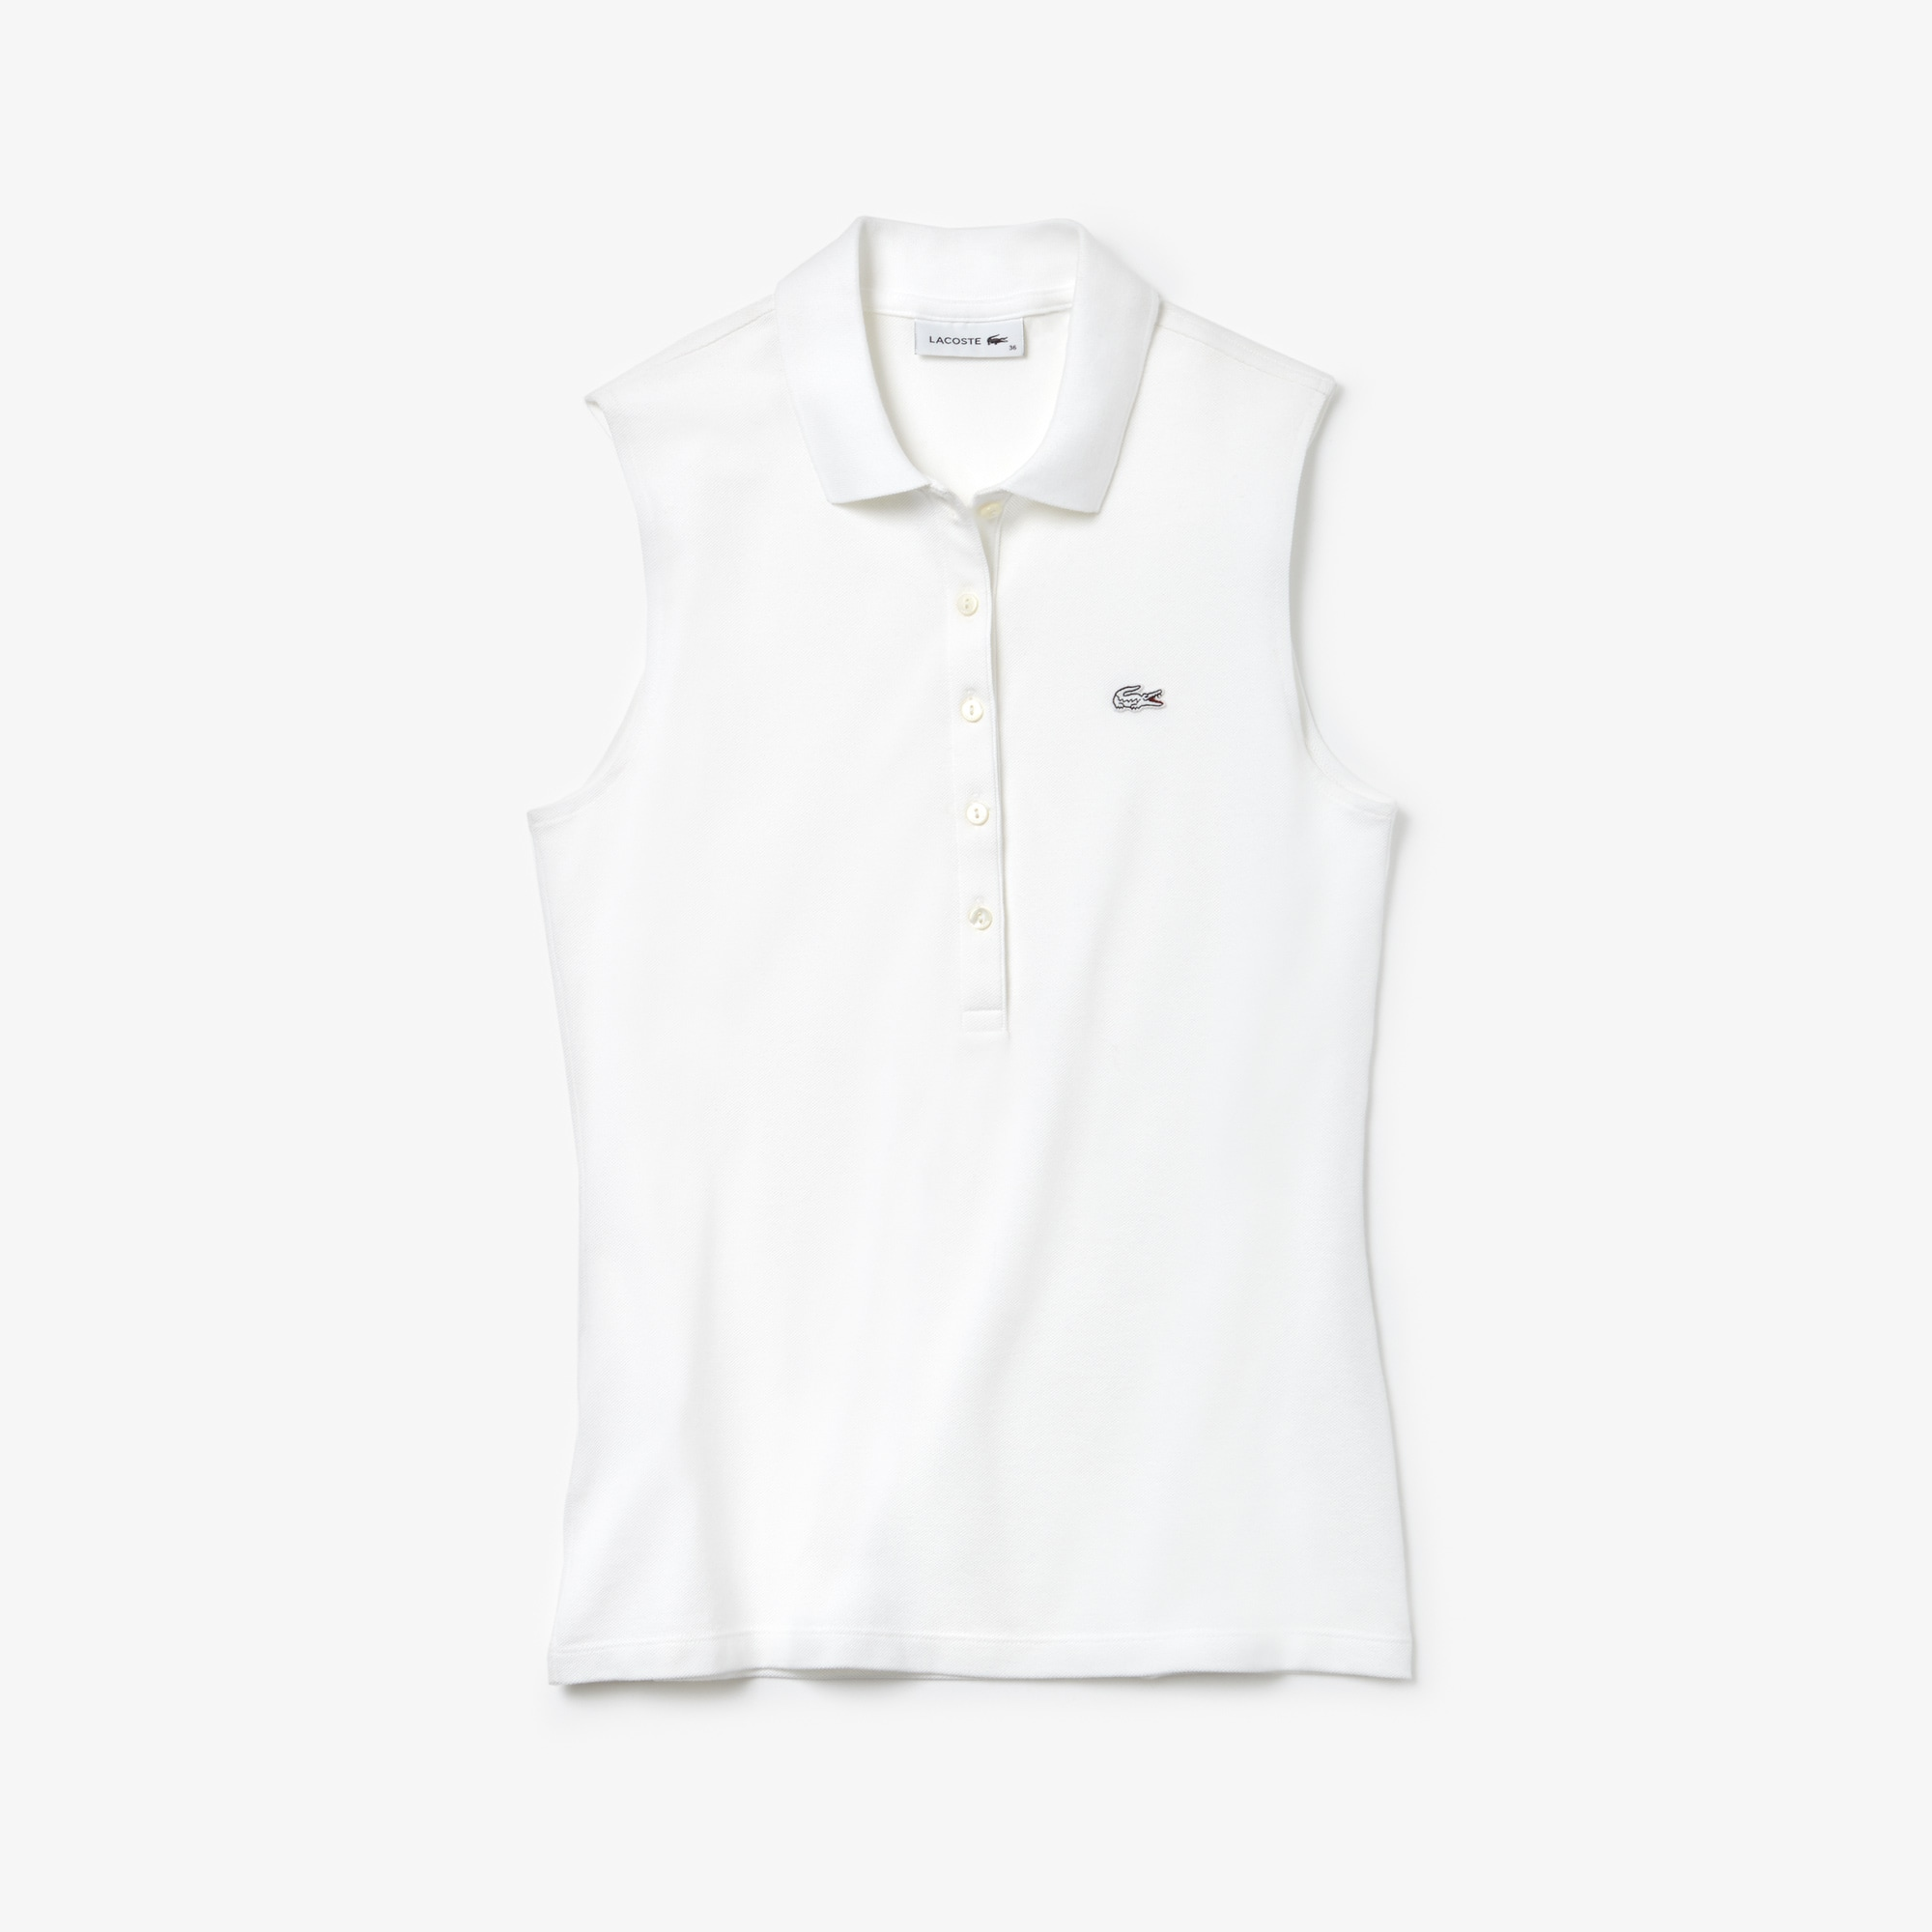 9a537cfc32 Women's Polo Shirts | Women's Fashion| LACOSTE